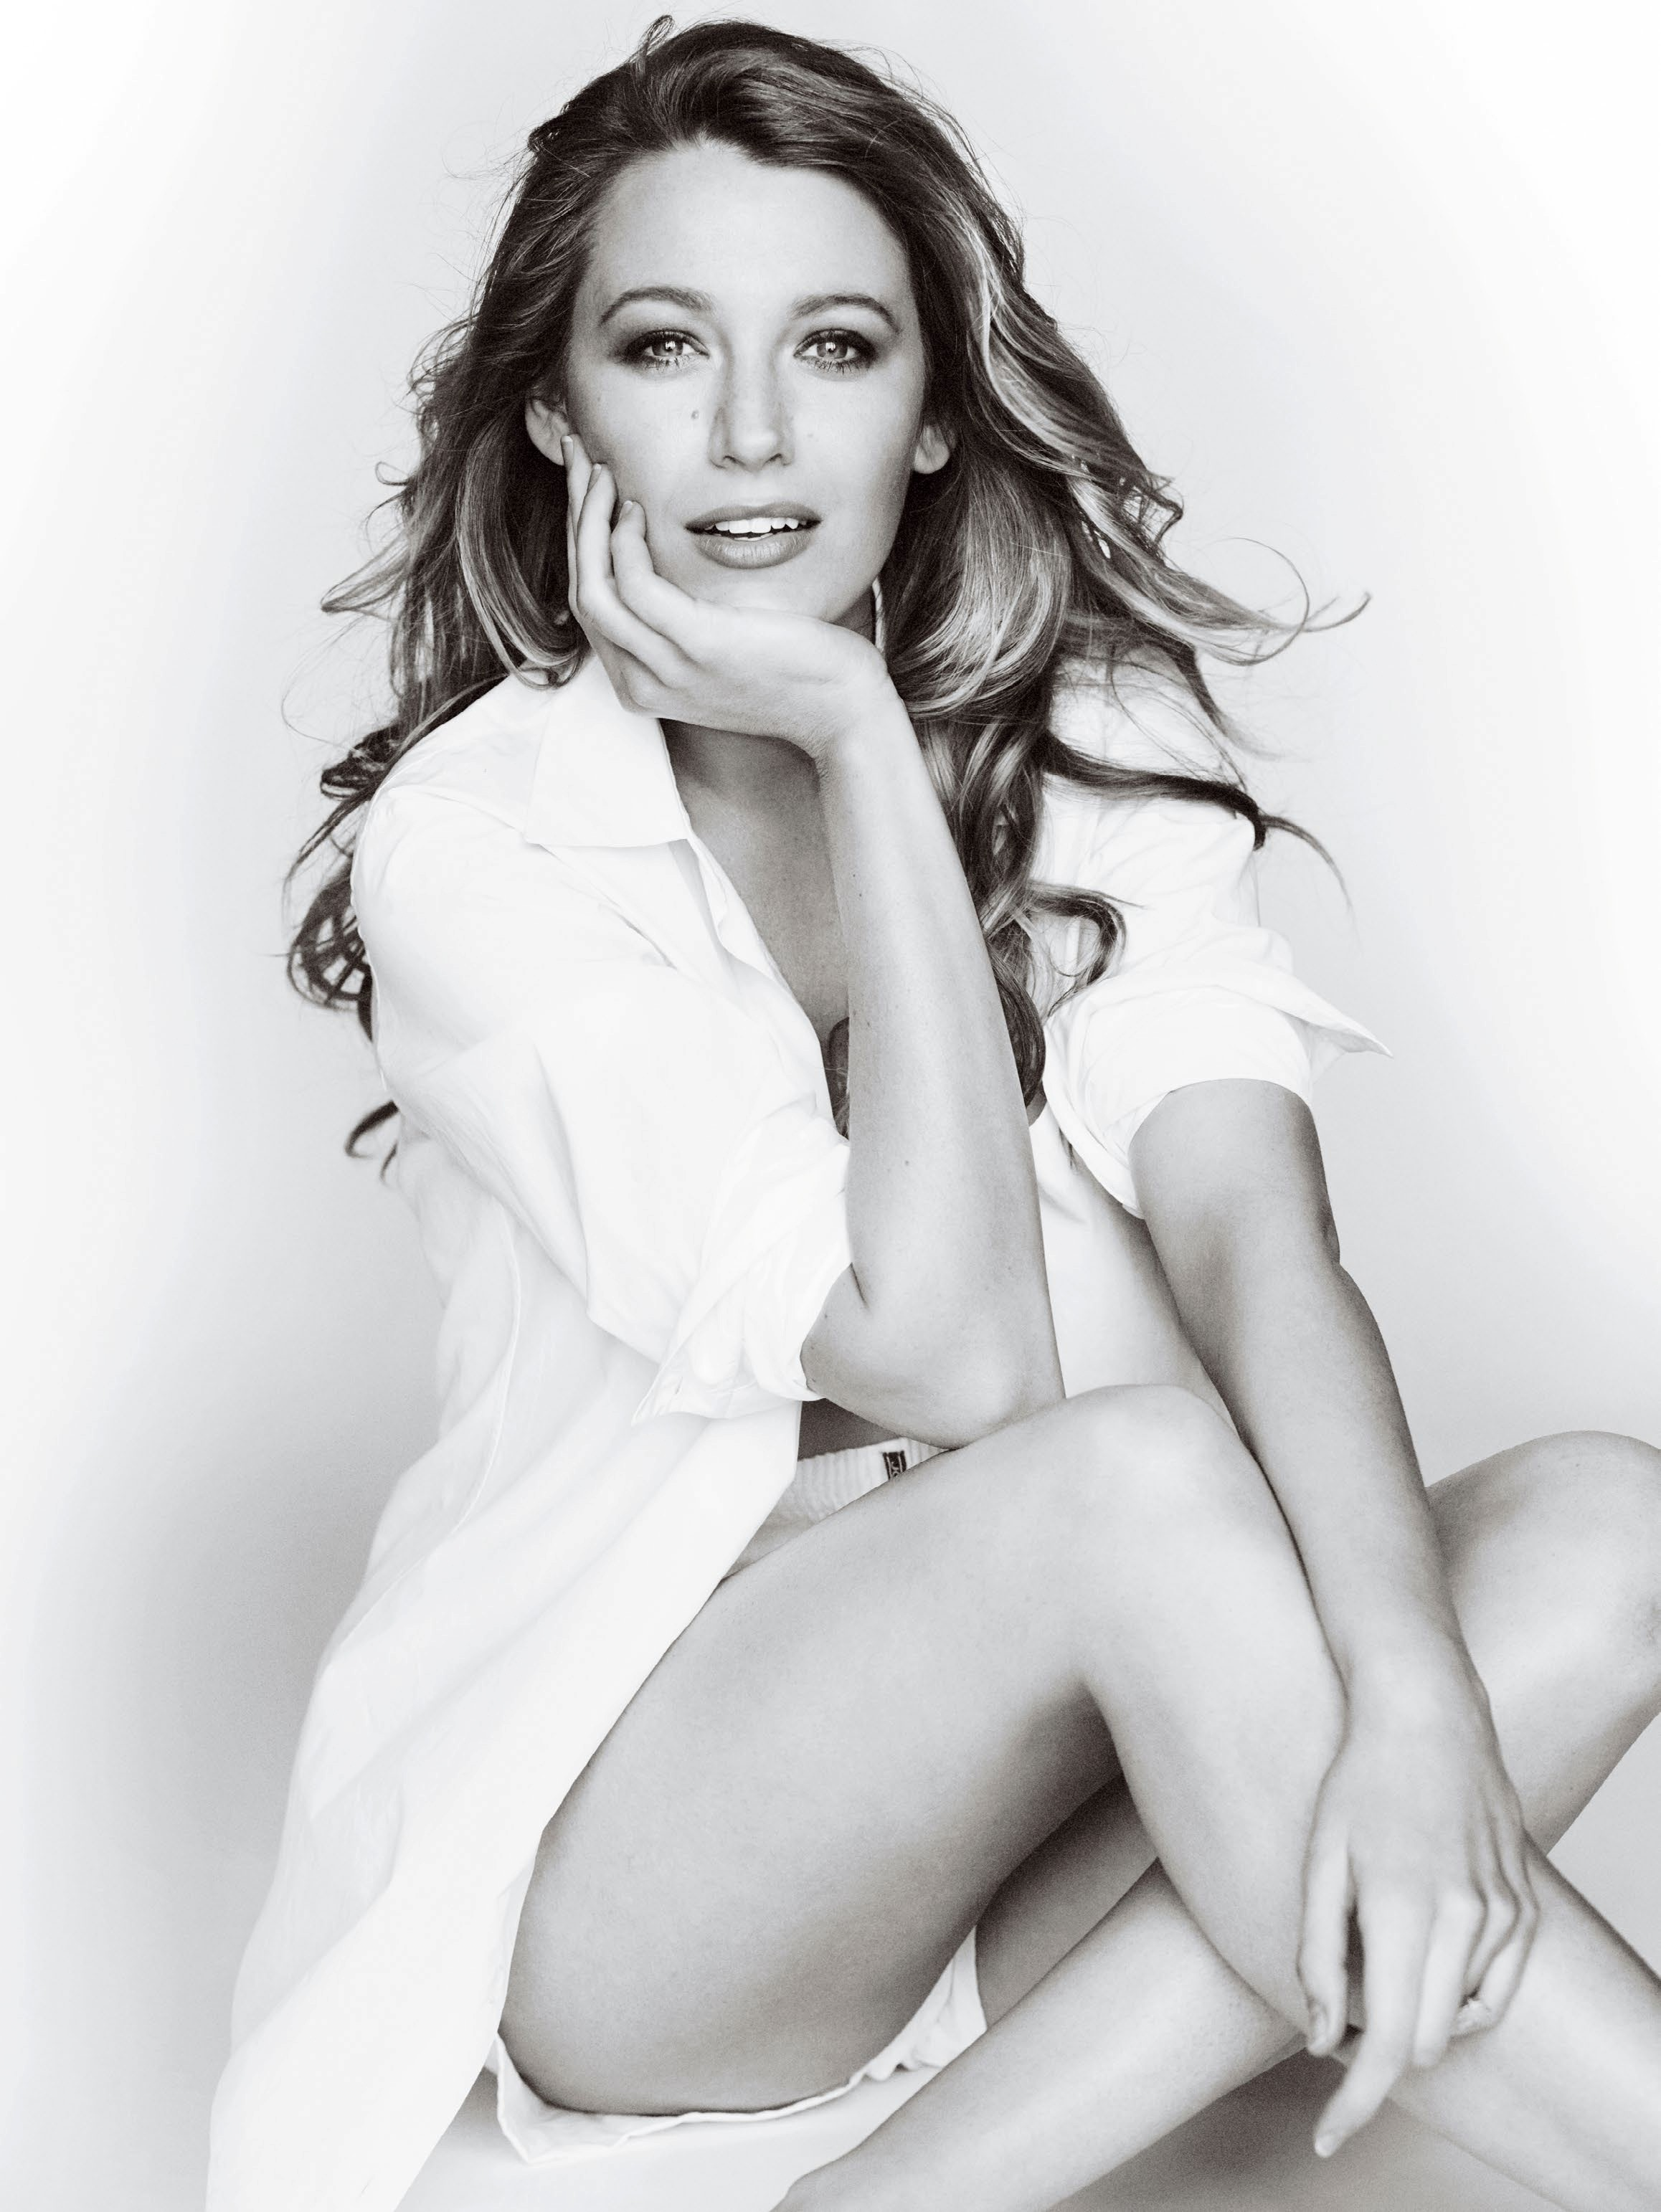 Blake Lively Android Wallpapers